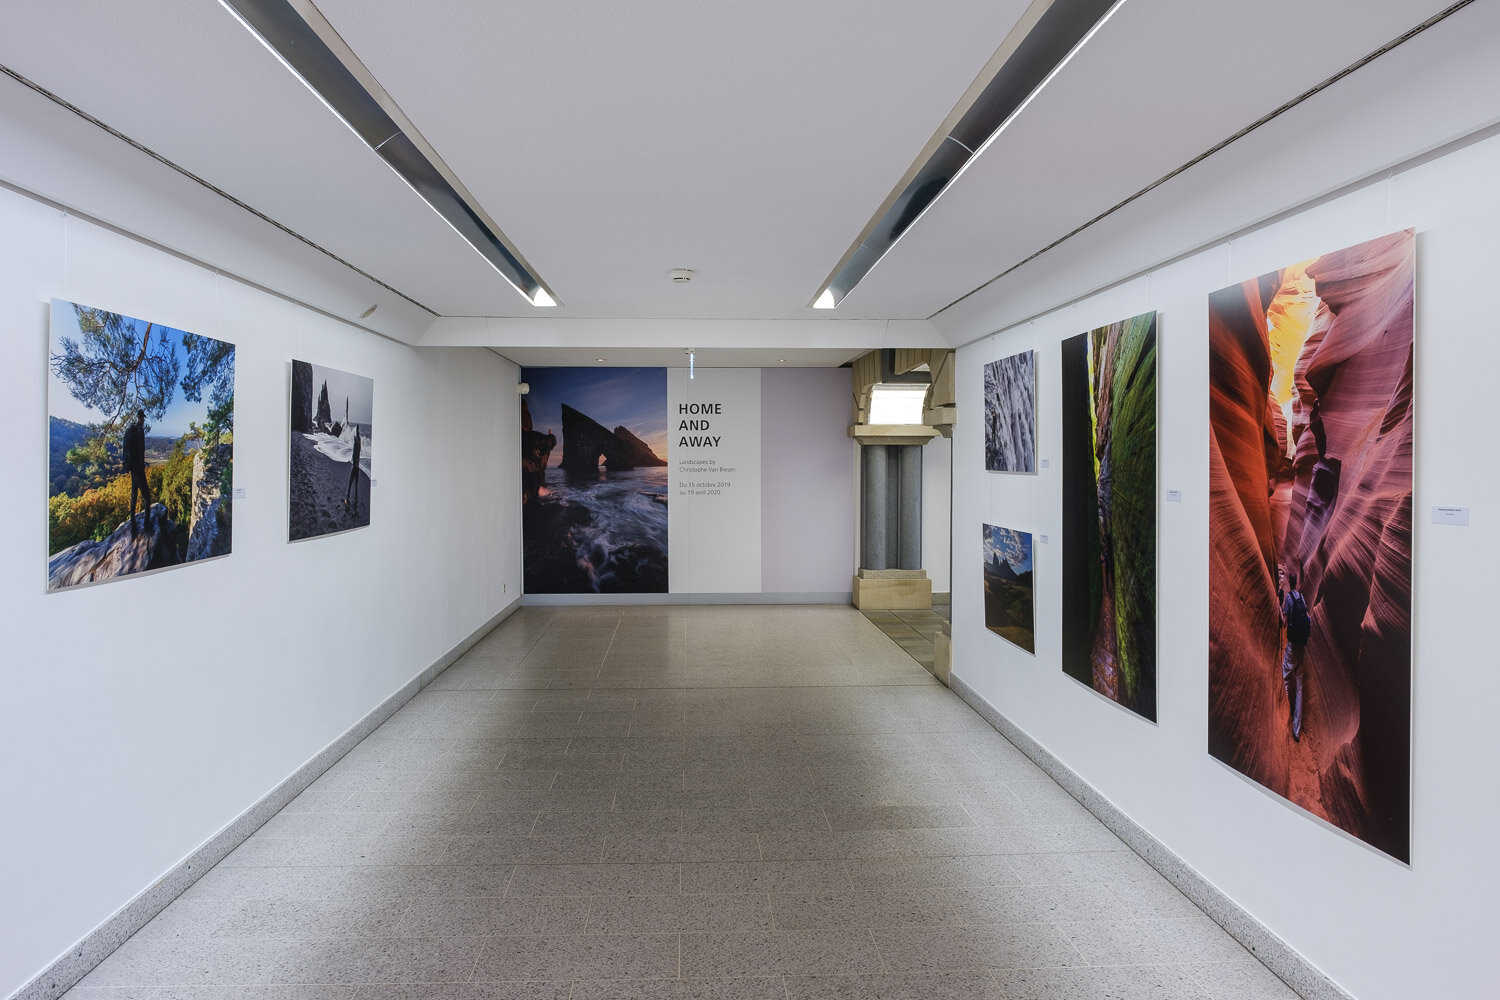 Landscape photography exhibition at the Contemporary Art Gallery Am Tunnel in Luxembourg City - Home and Away - Landscapes by Christophe Van Biesen - Entrance of the exhibition